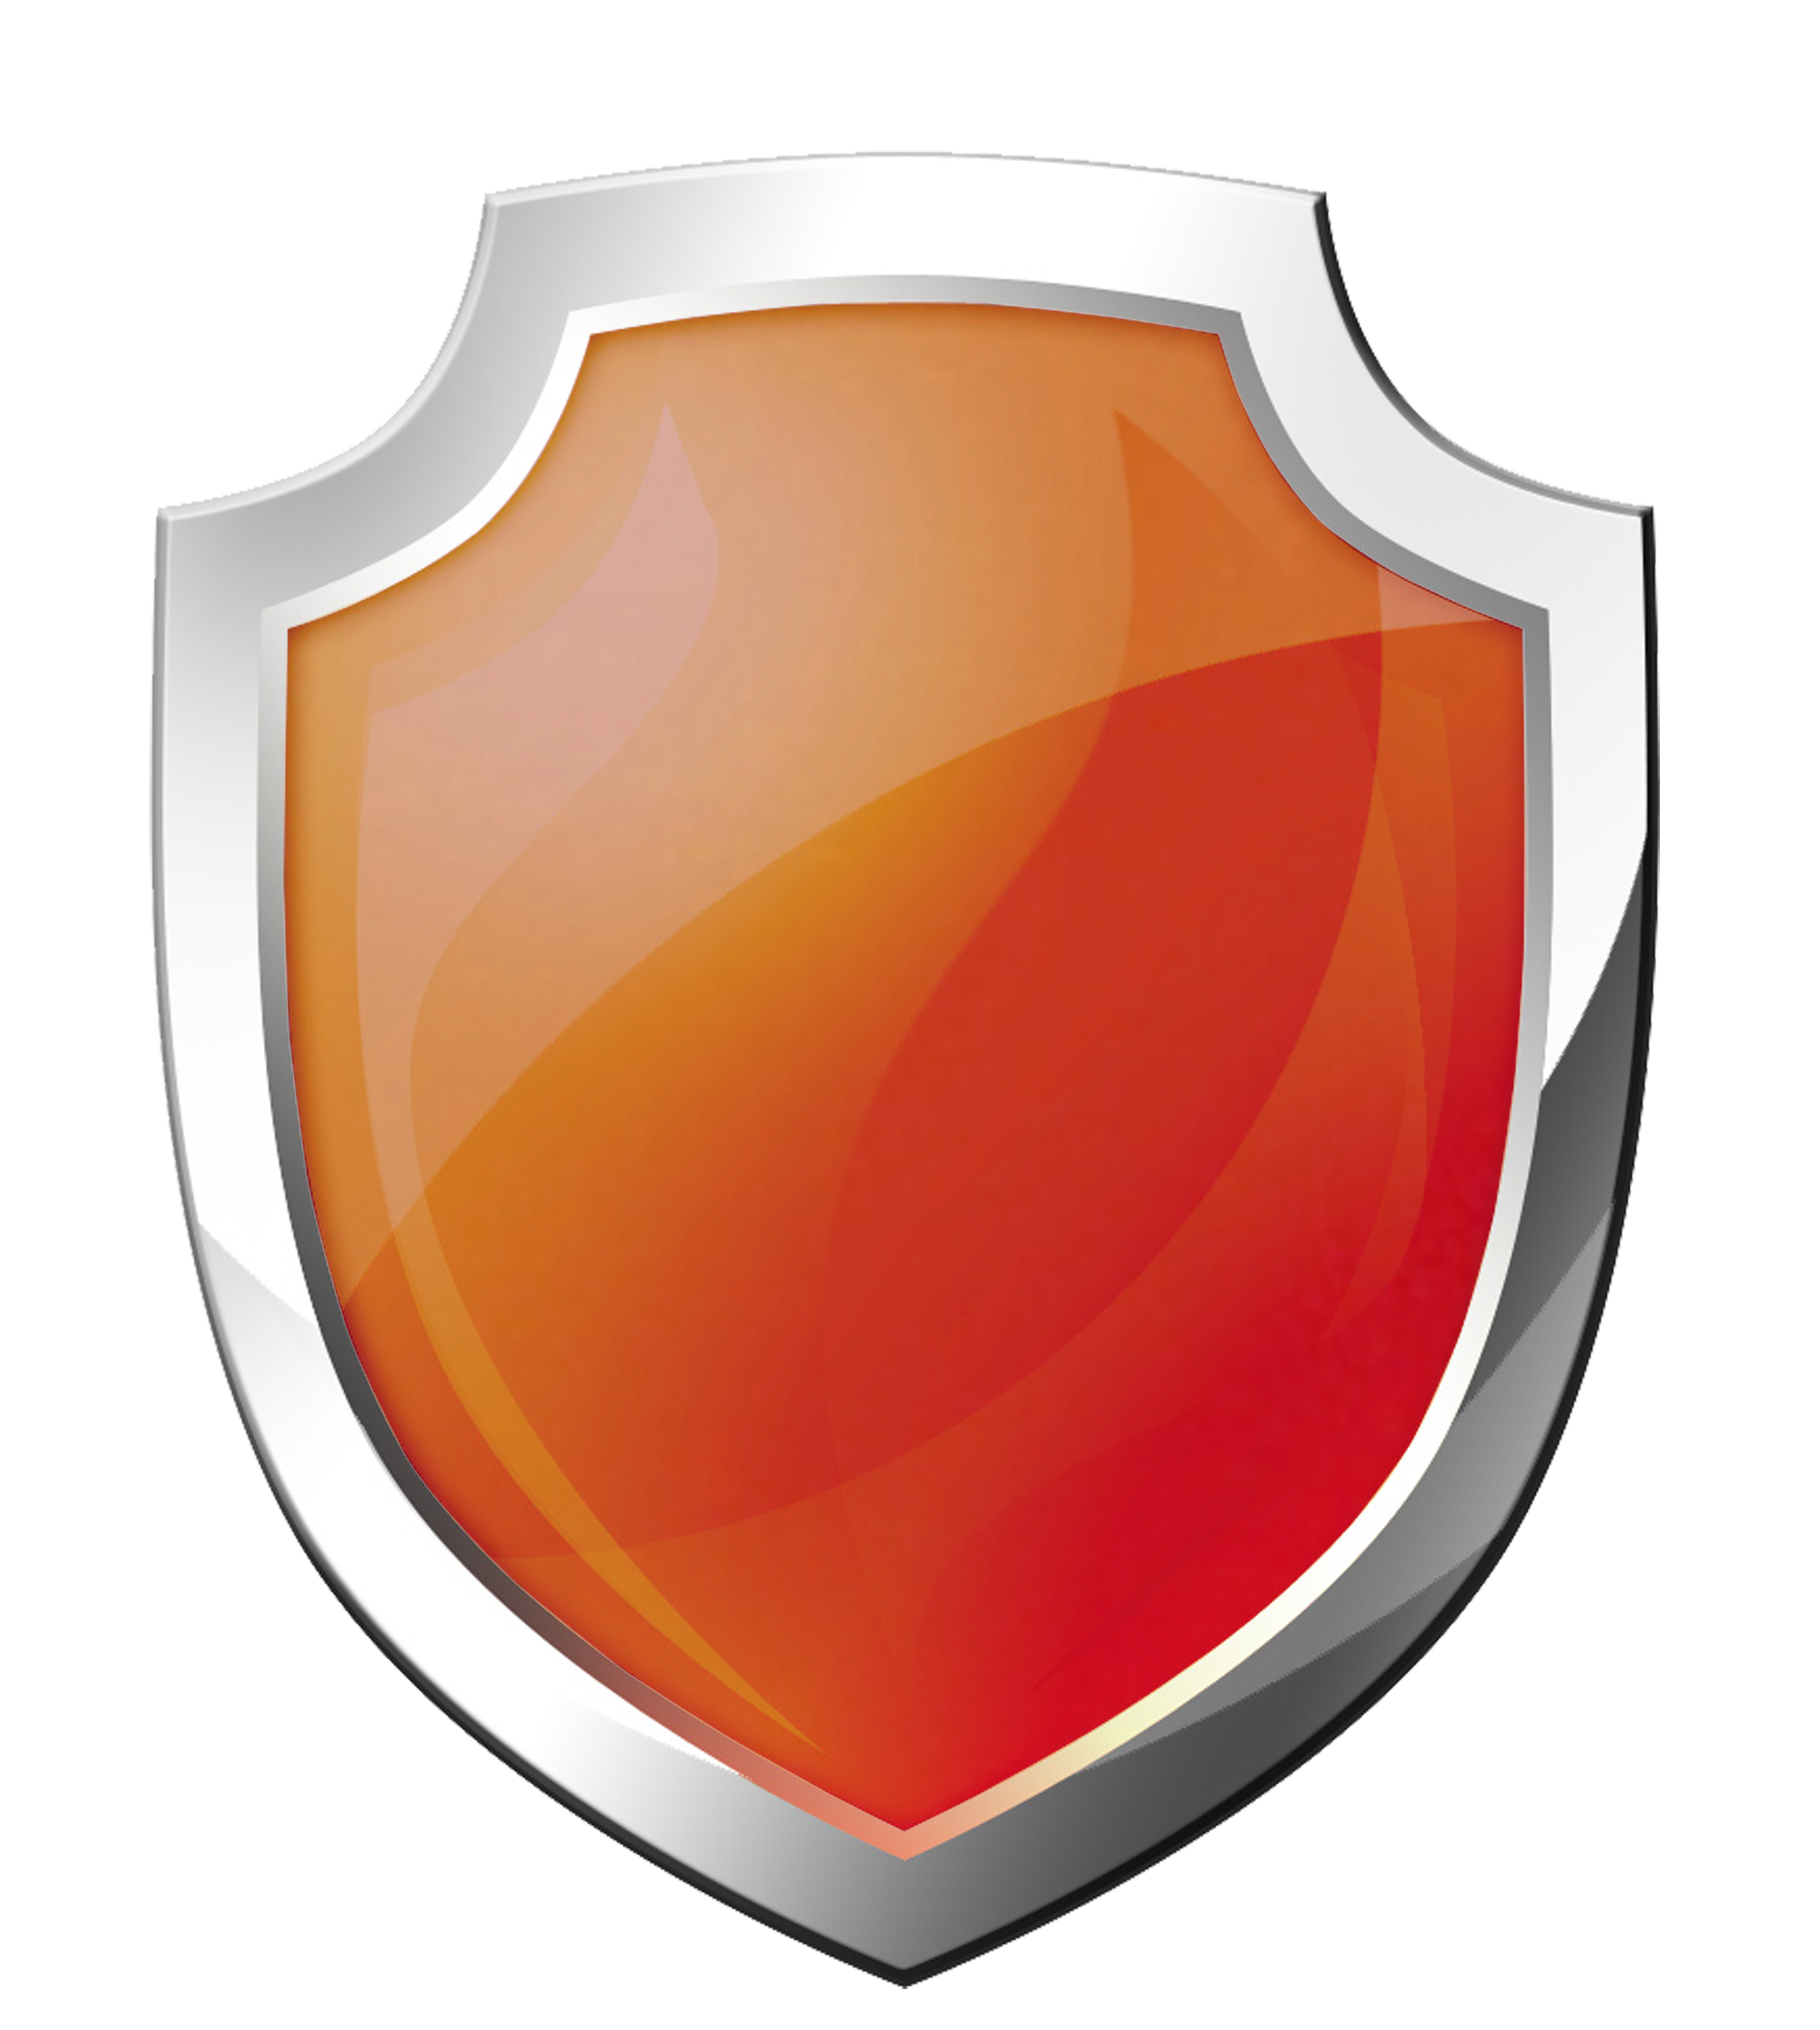 orange Shield PNG images Download